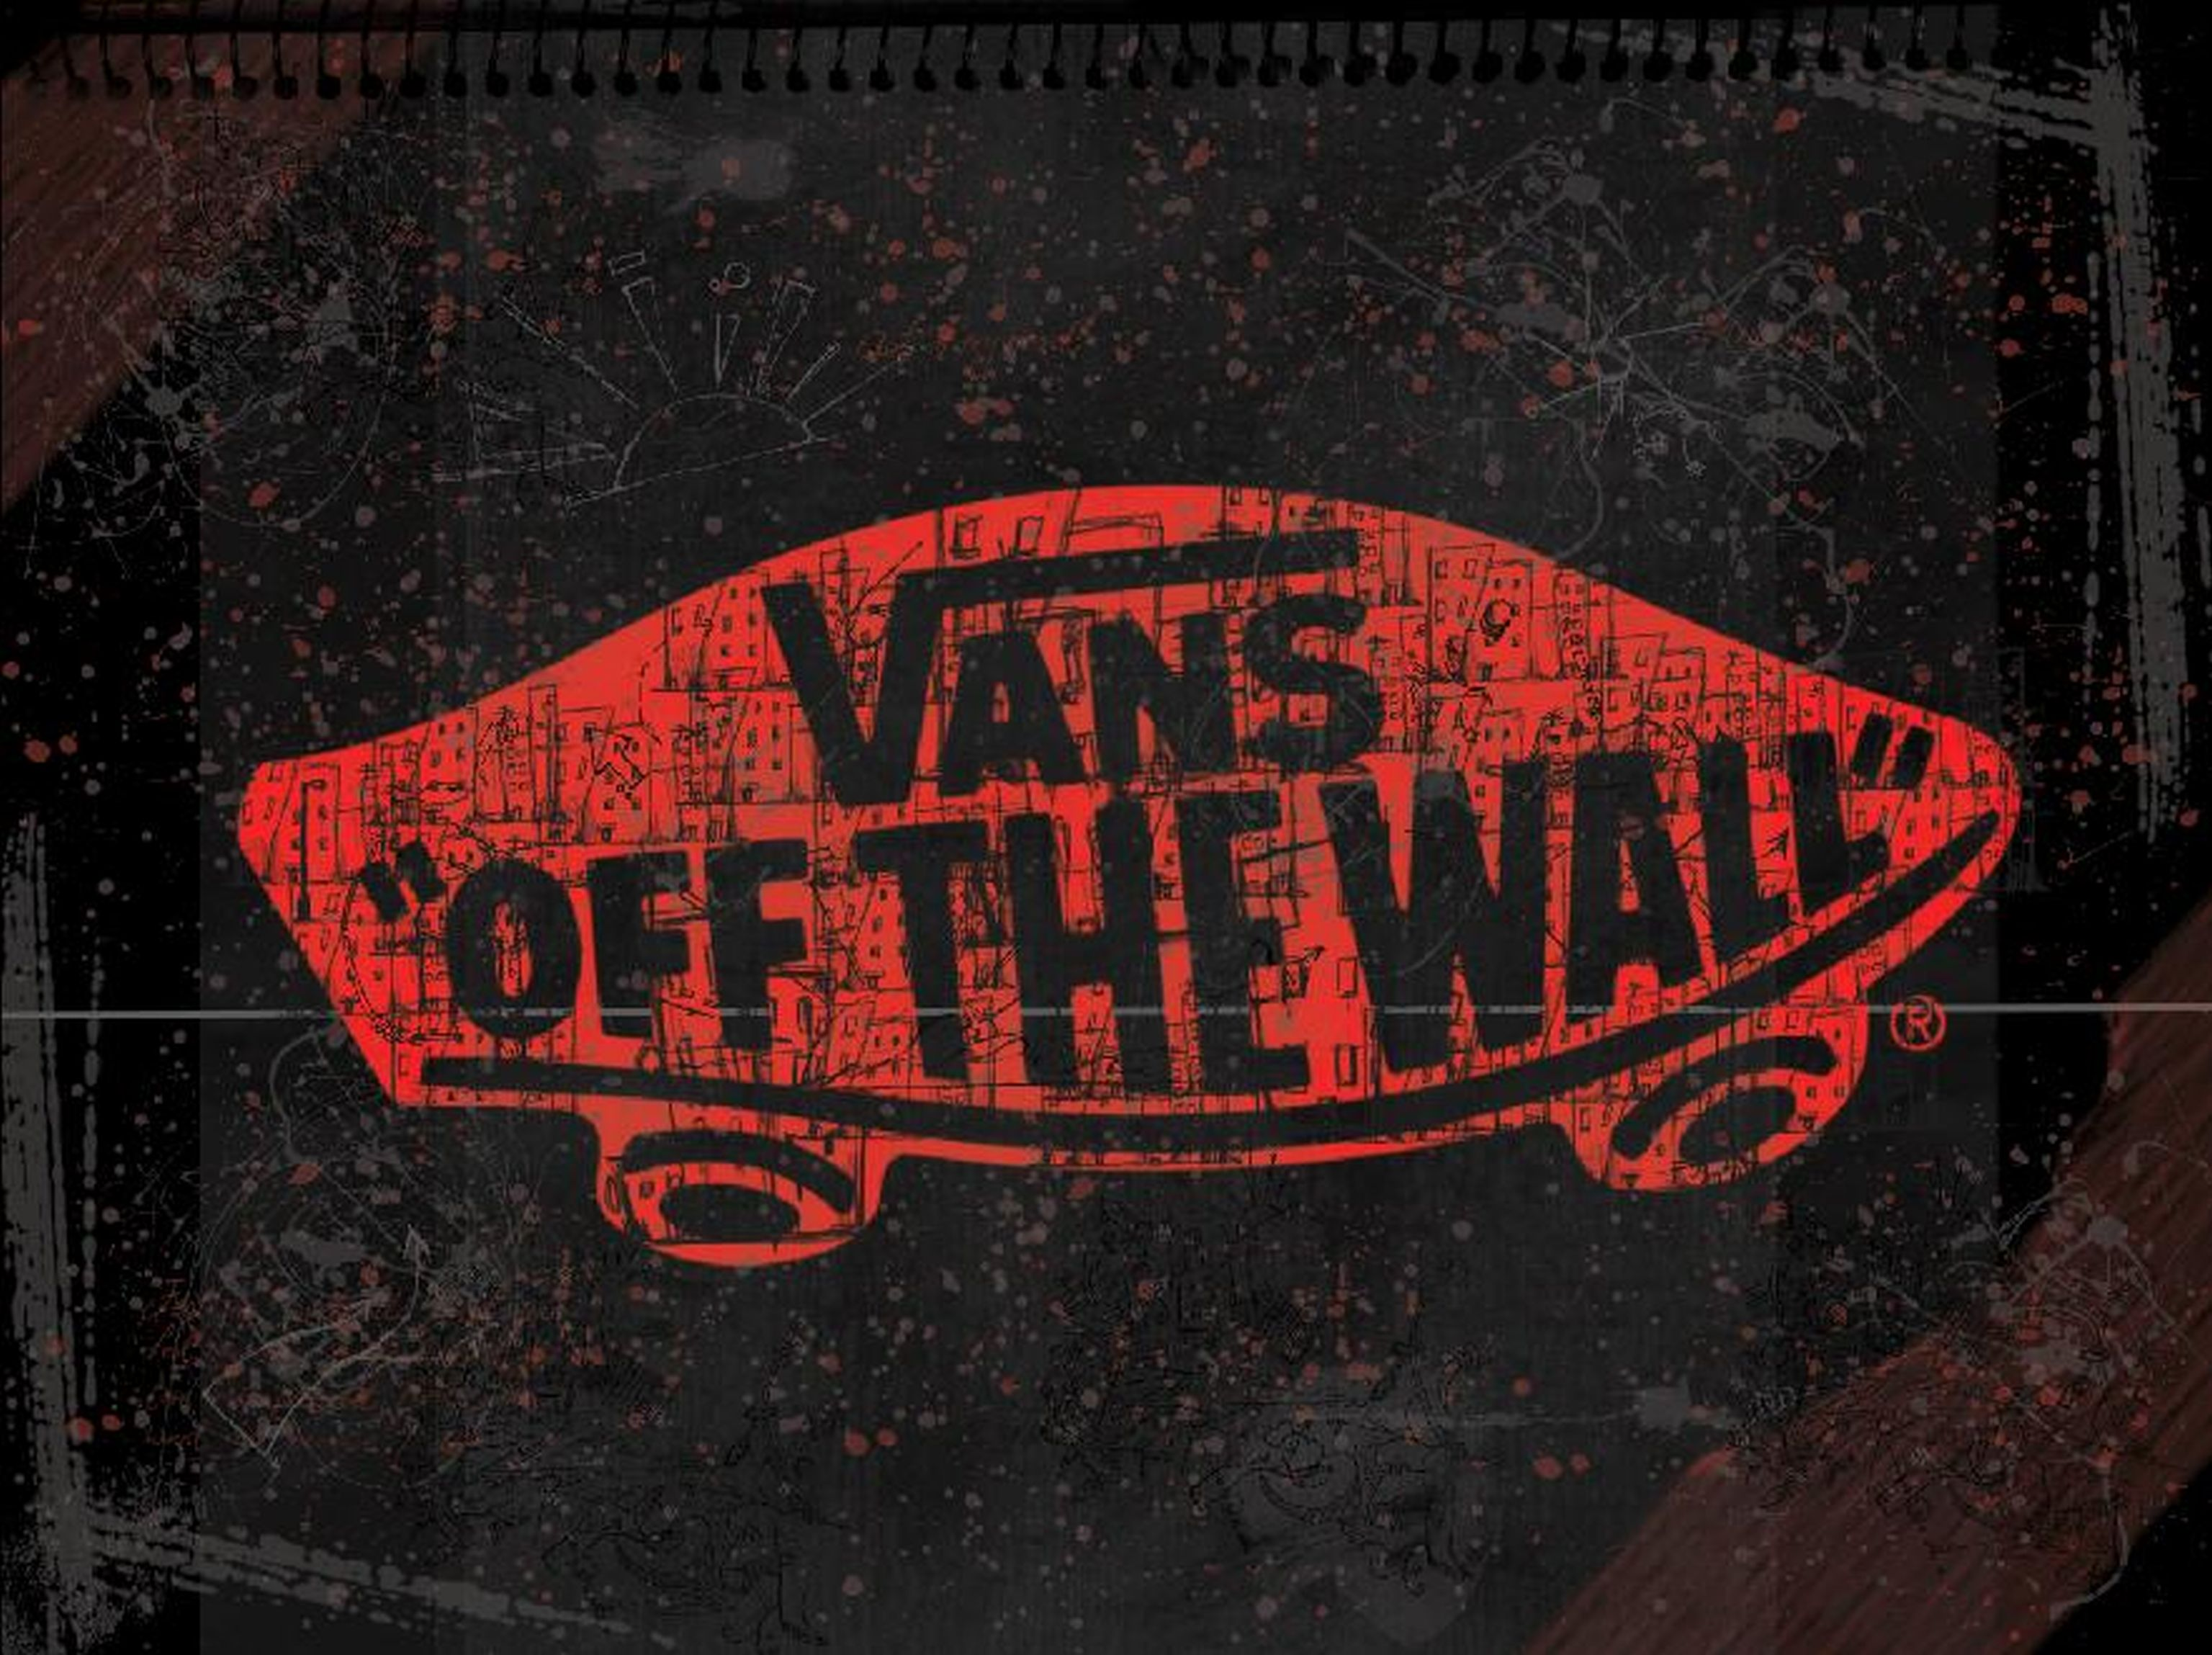 Red vans off the wall skateboarding logo dark background Wallpapers for the wall